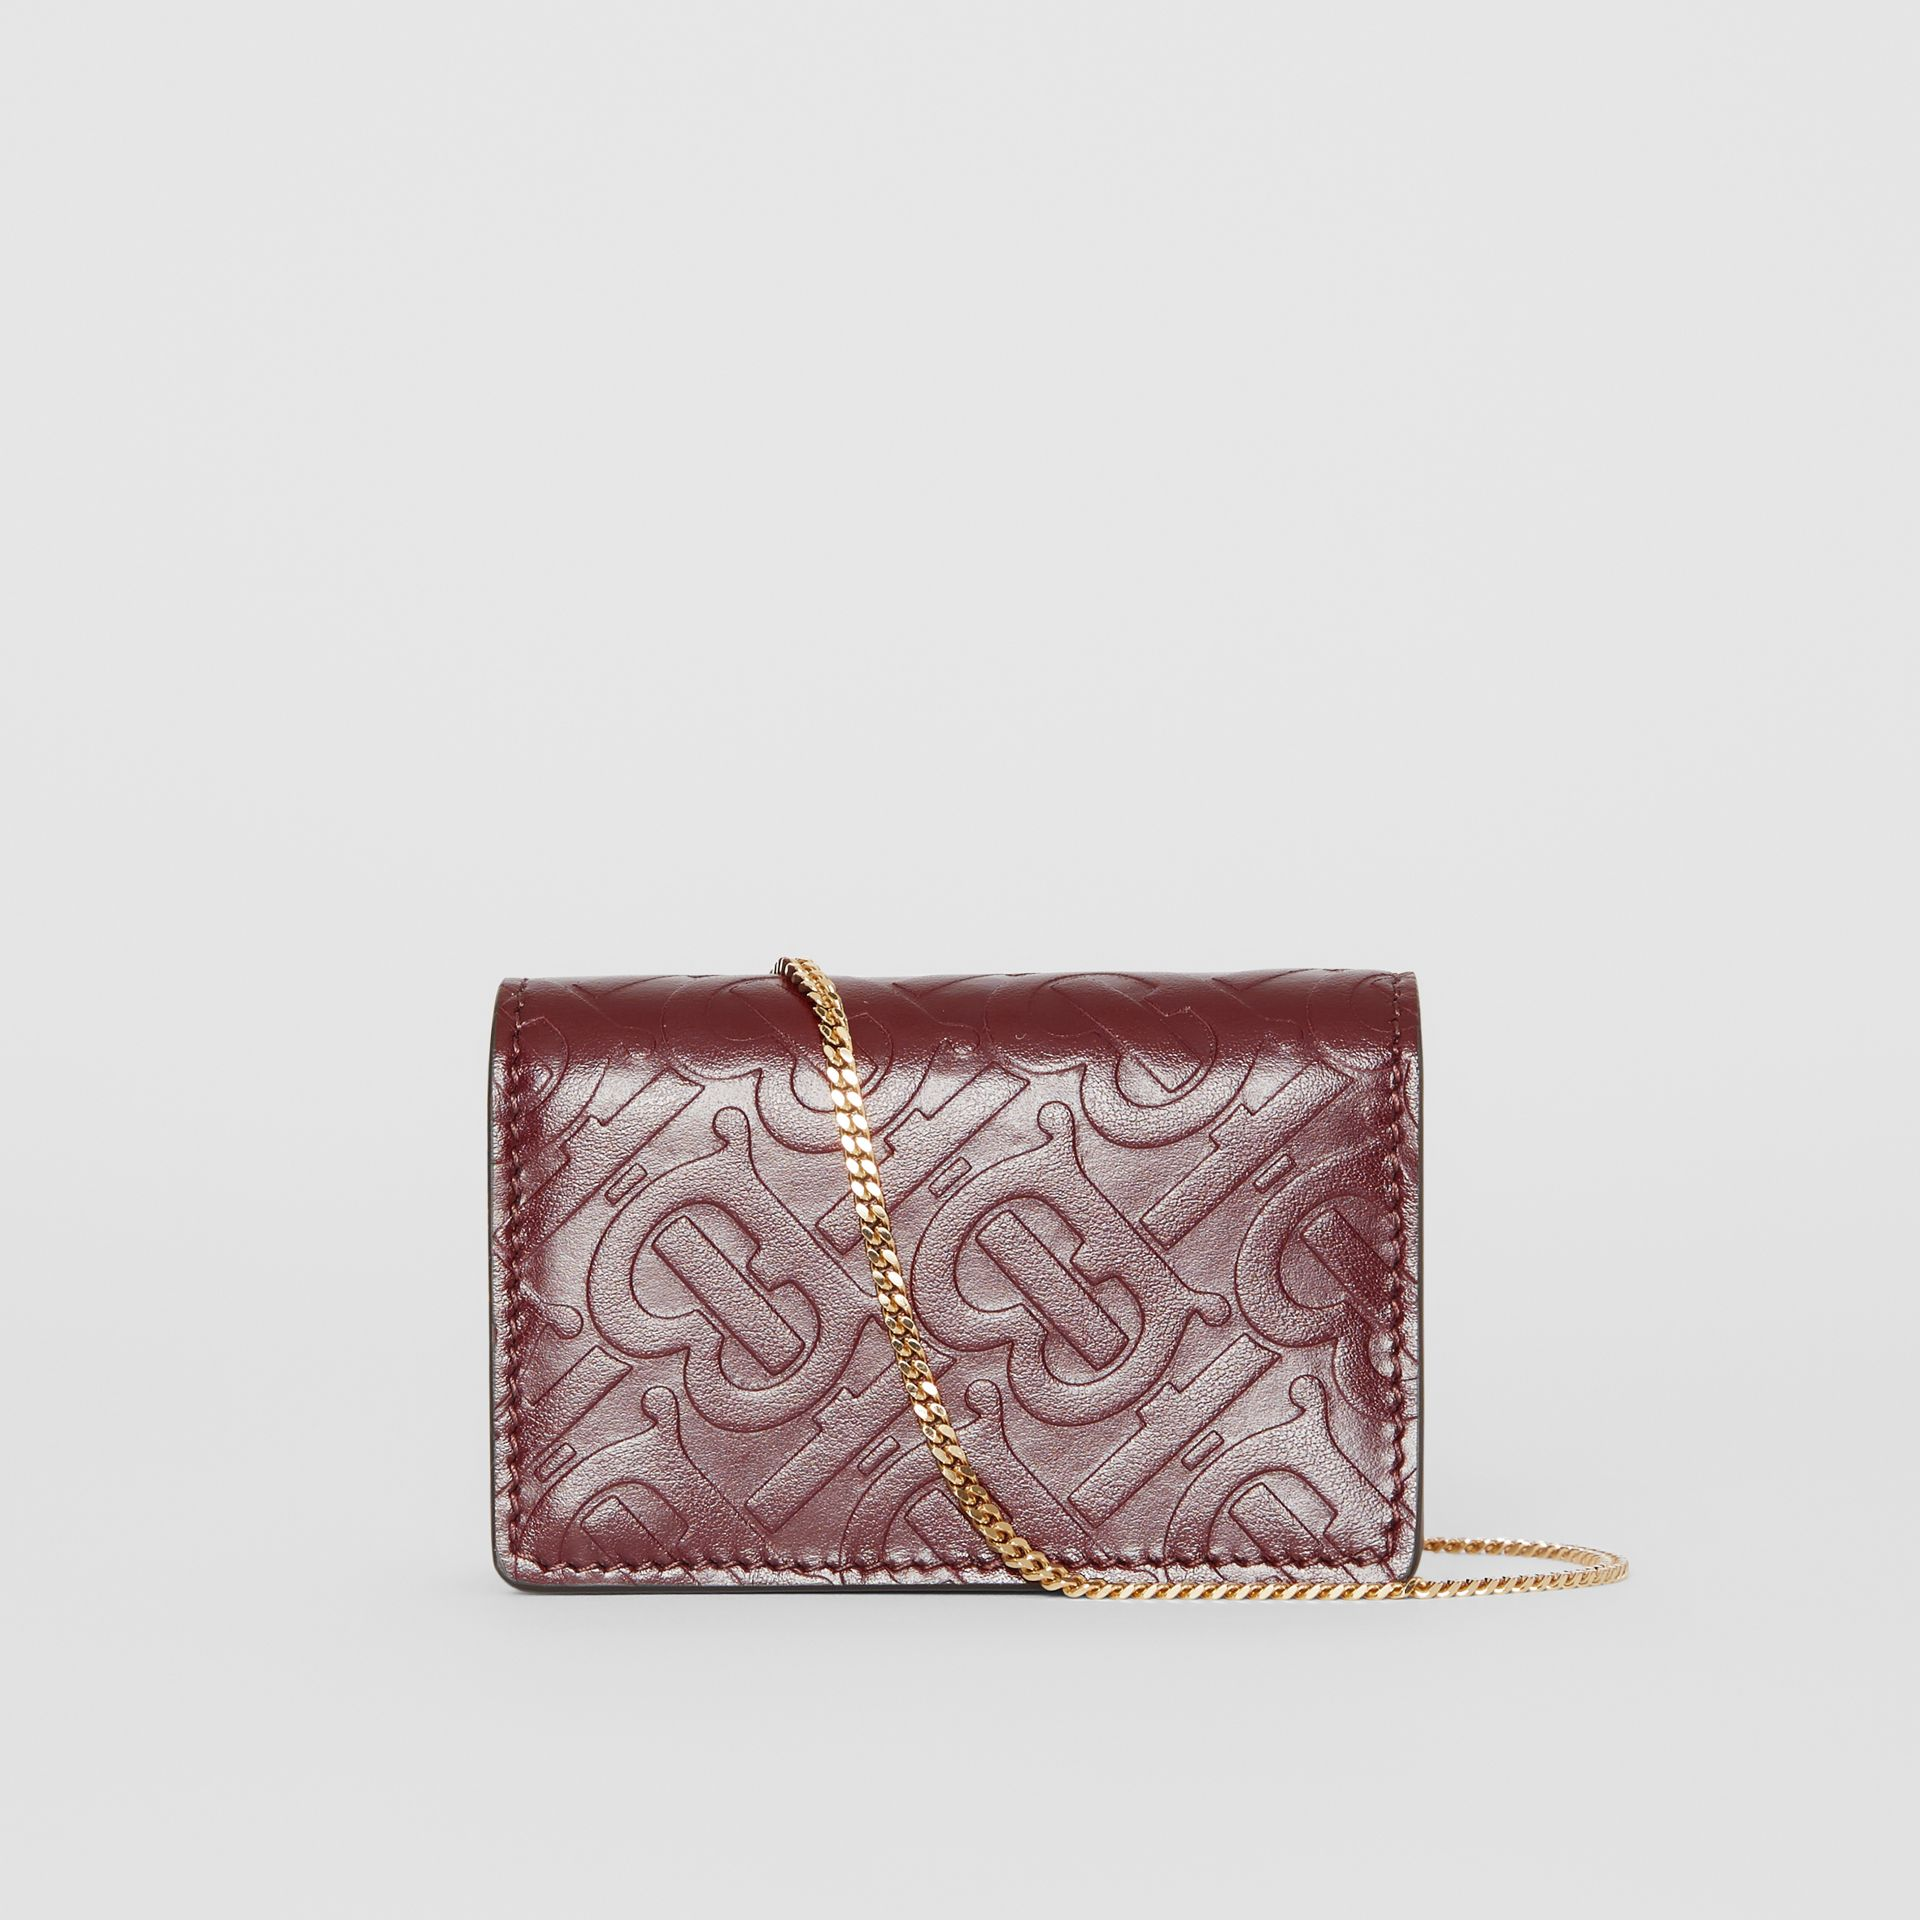 Porte-cartes en cuir Monogram avec sangle amovible (Oxblood) | Burberry - photo de la galerie 7